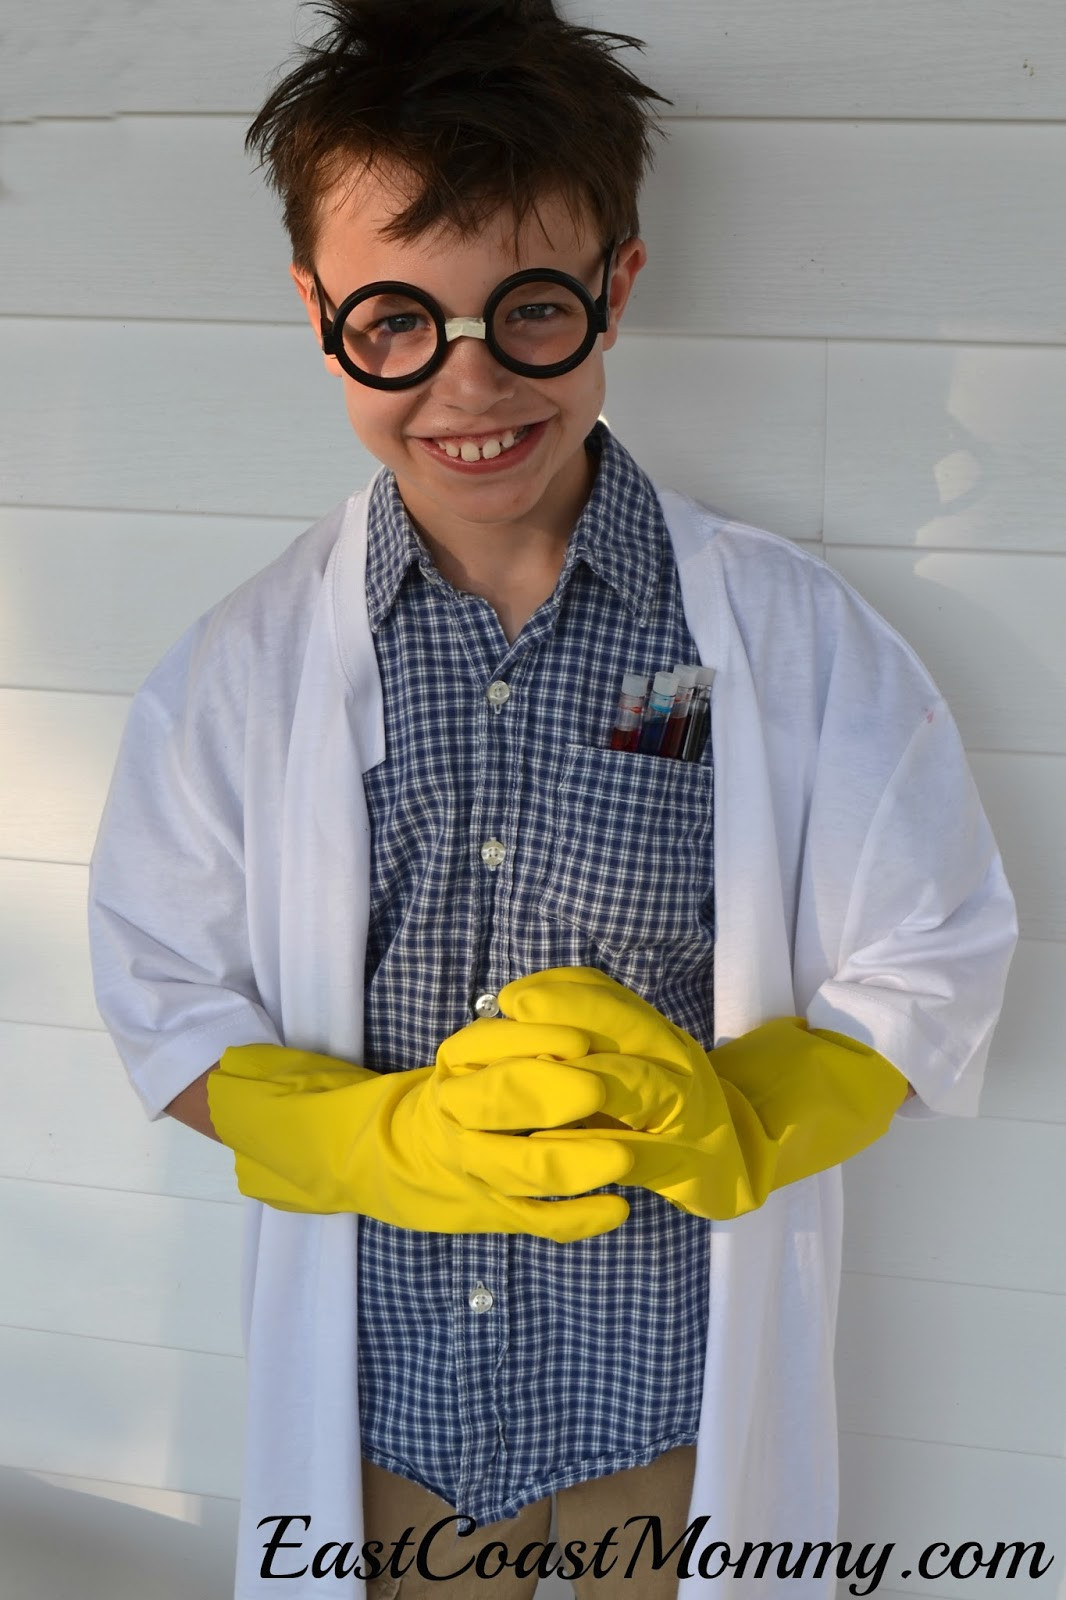 Best ideas about DIY Mad Scientist Costume . Save or Pin East Coast Mommy 5 Minute no sew Costumes Now.